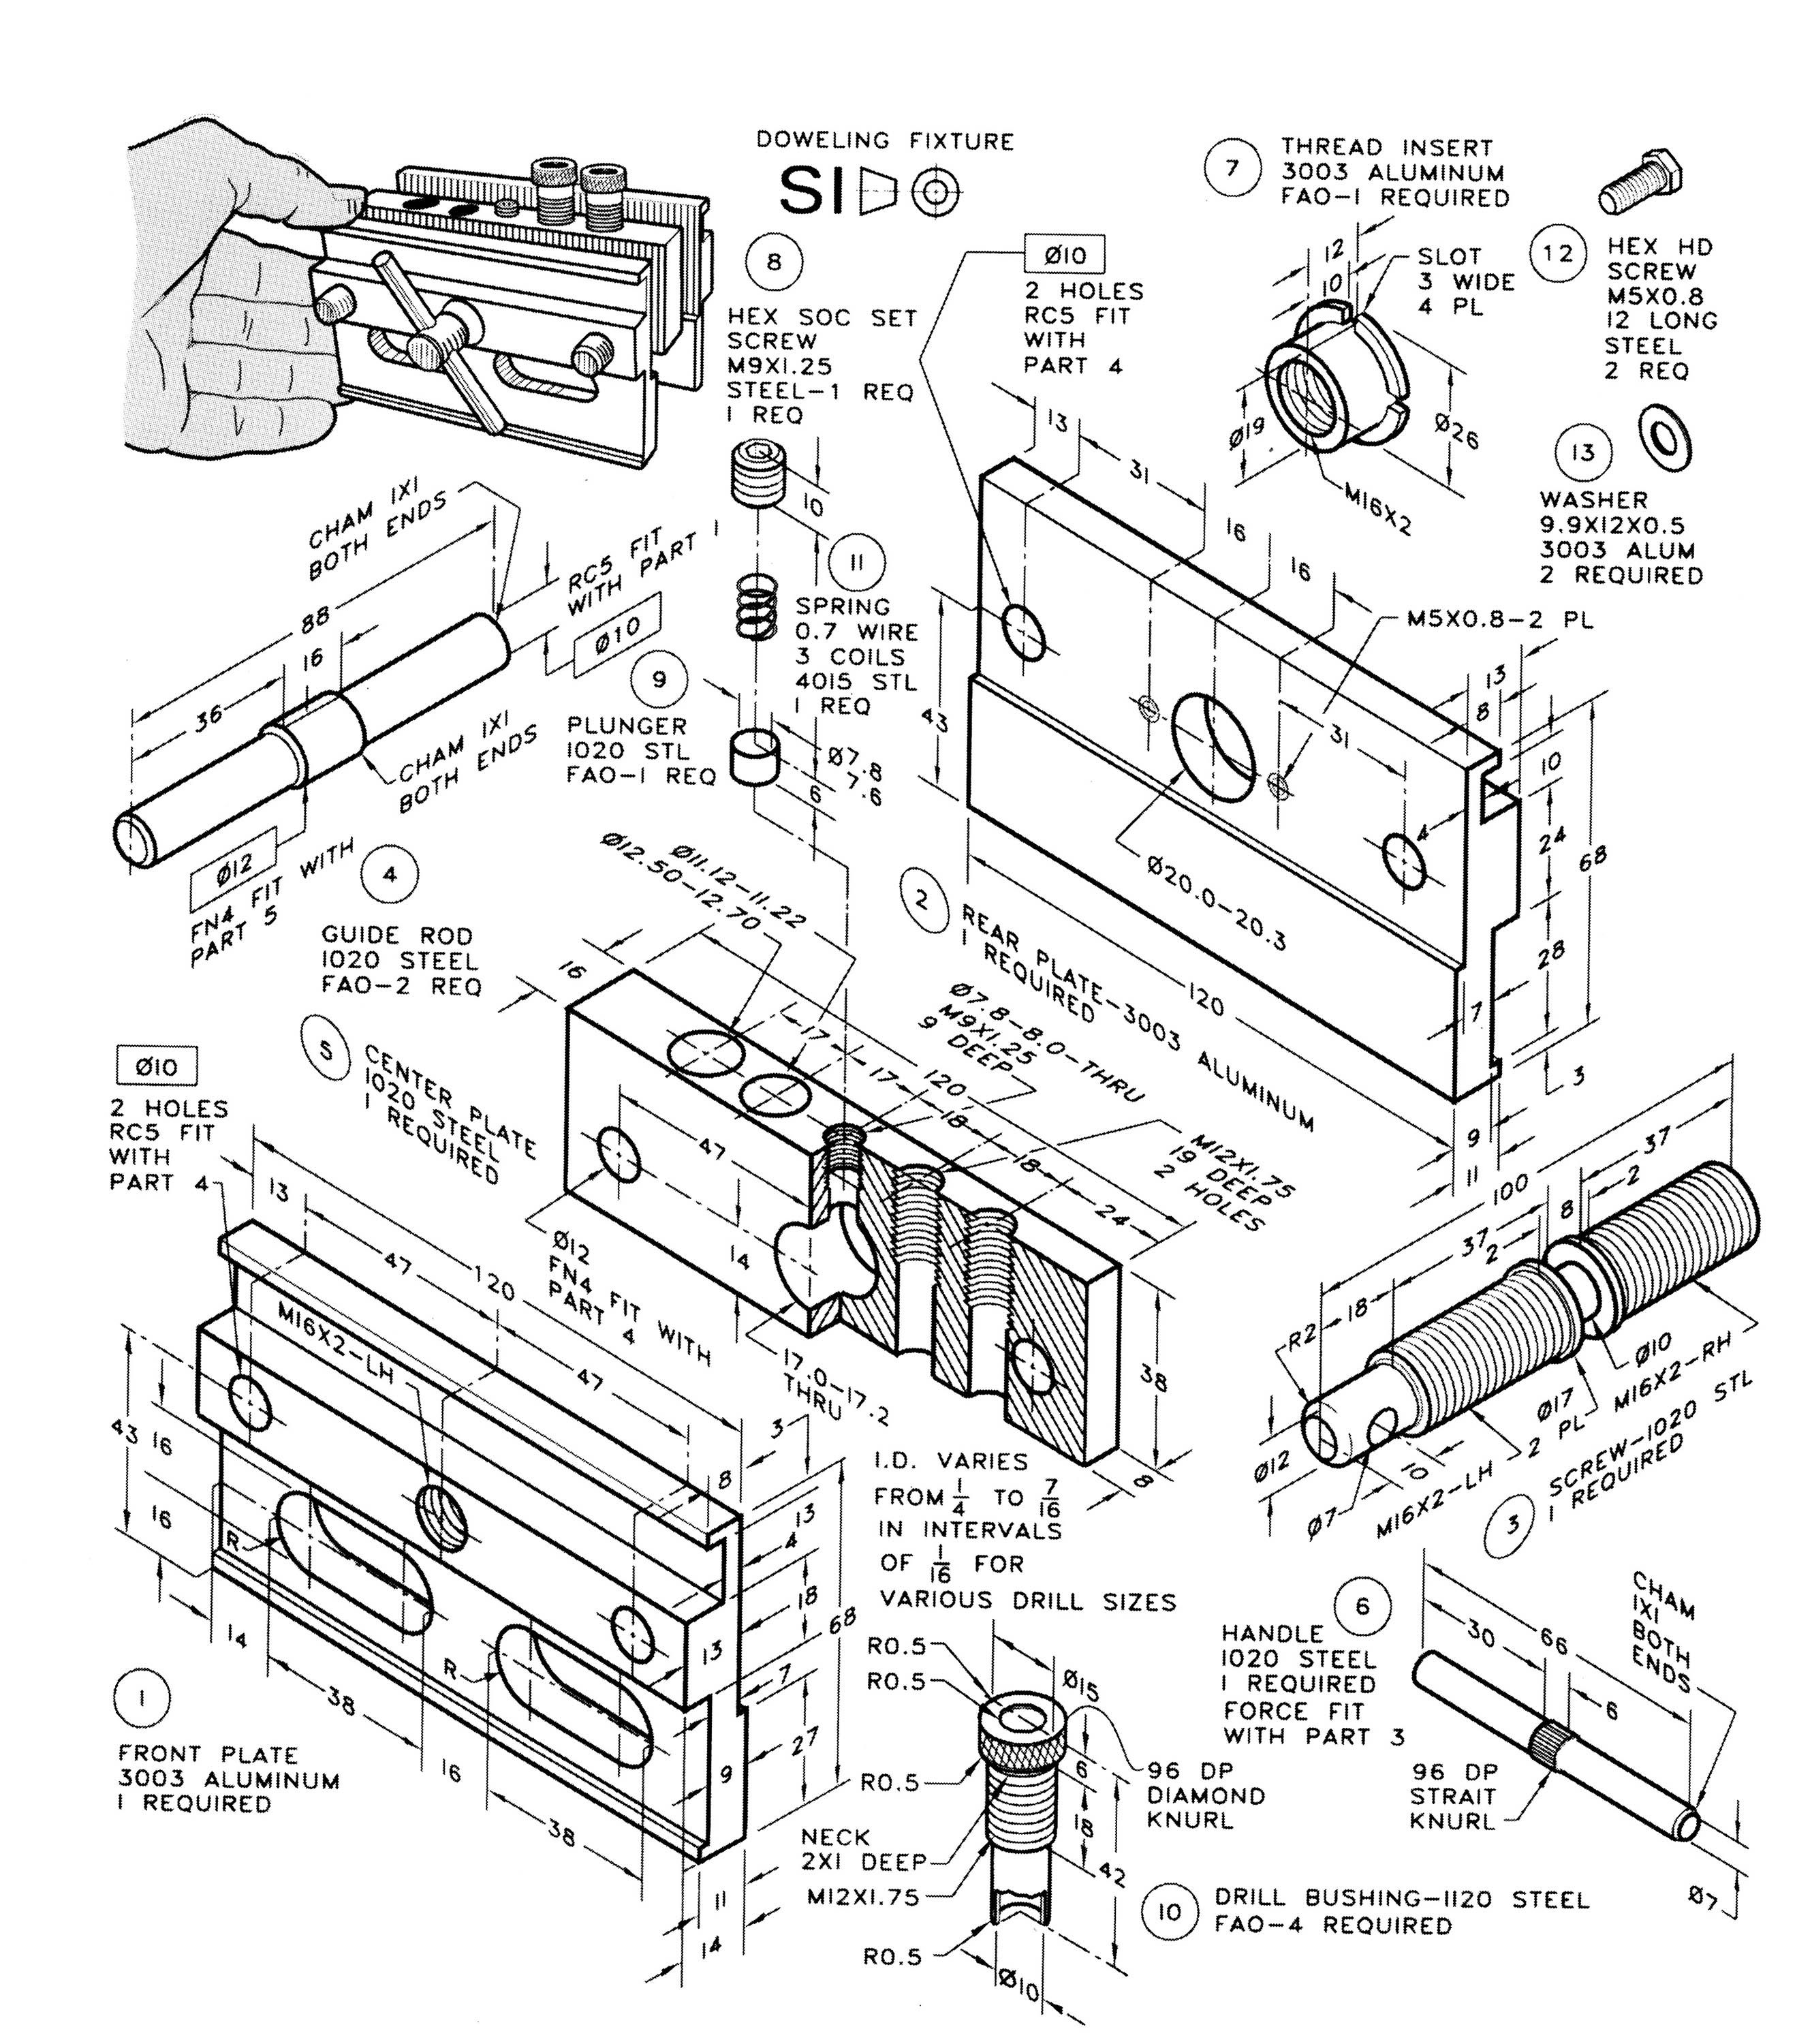 Pin By Russell Smith On Engineering Mechanical